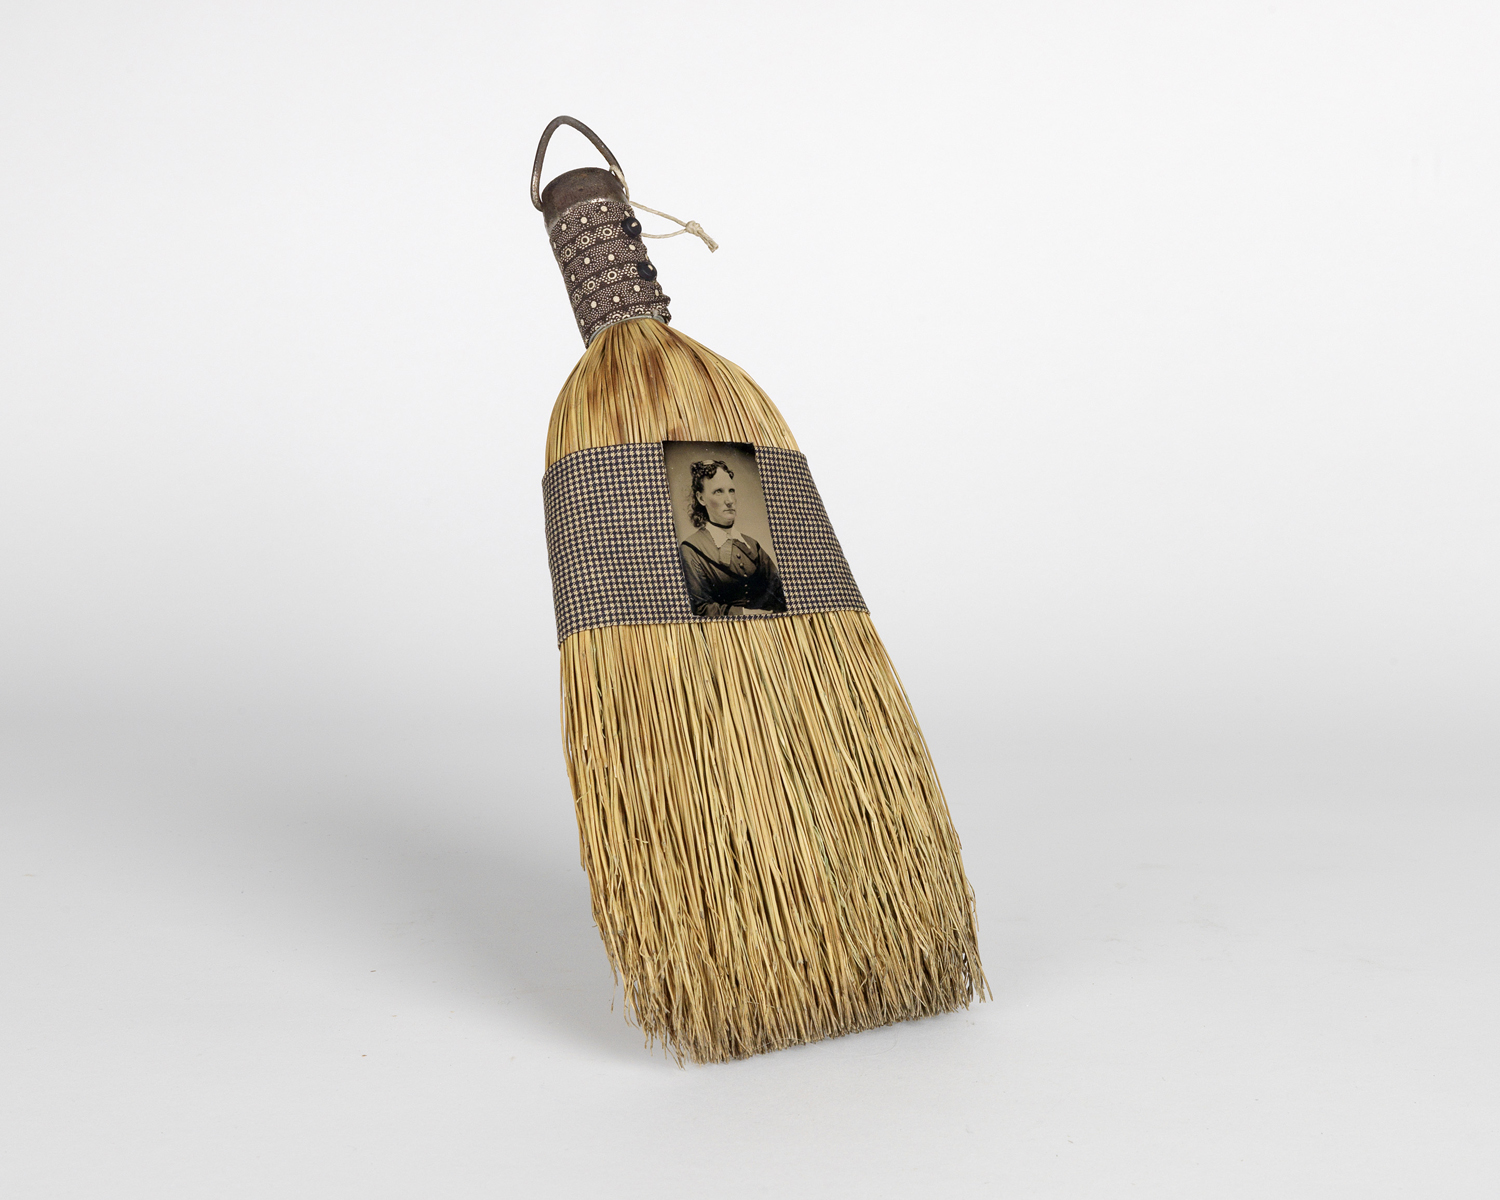 Reworked period broom adorned with a vintage tintype and fabric by artist Elaine Hunstman. 1880s-1990s